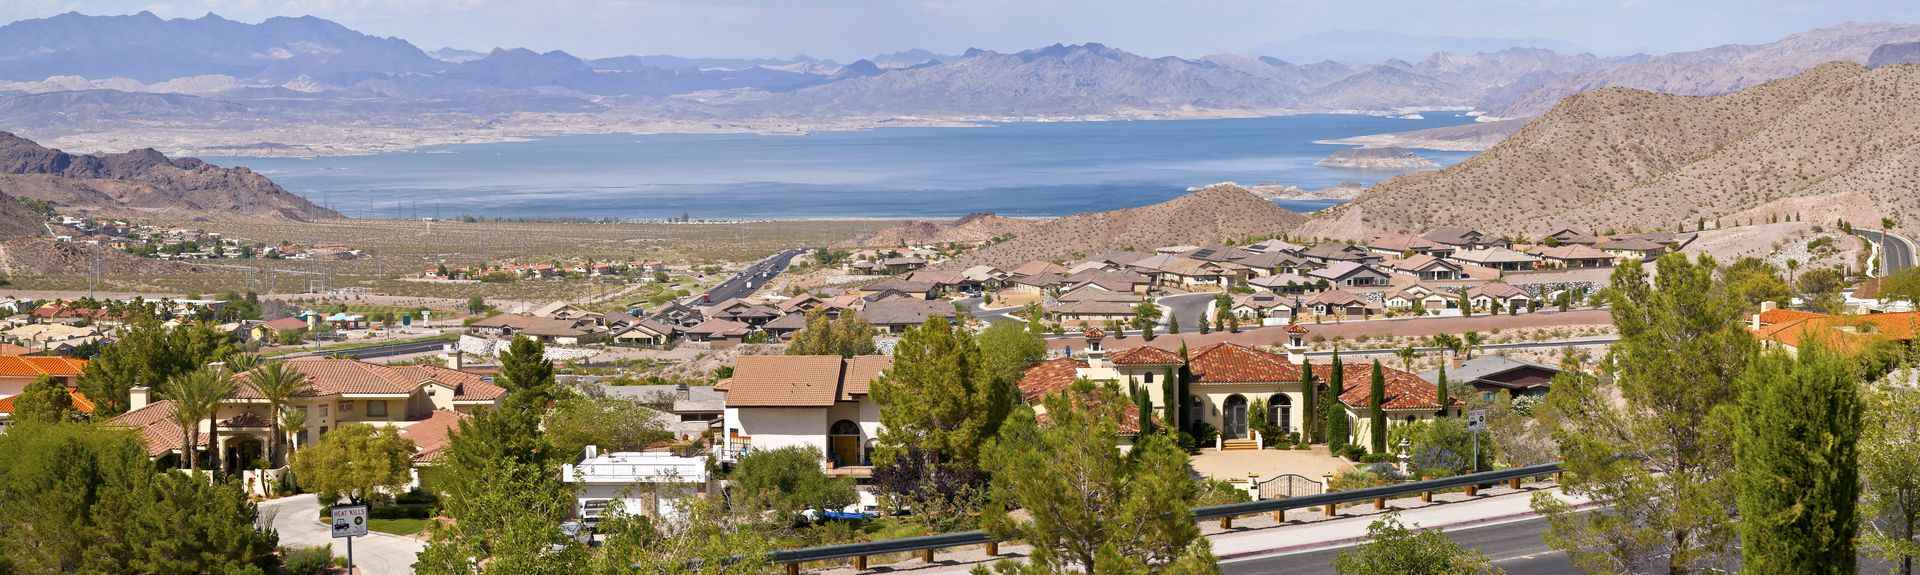 Boulder City, NV, USA